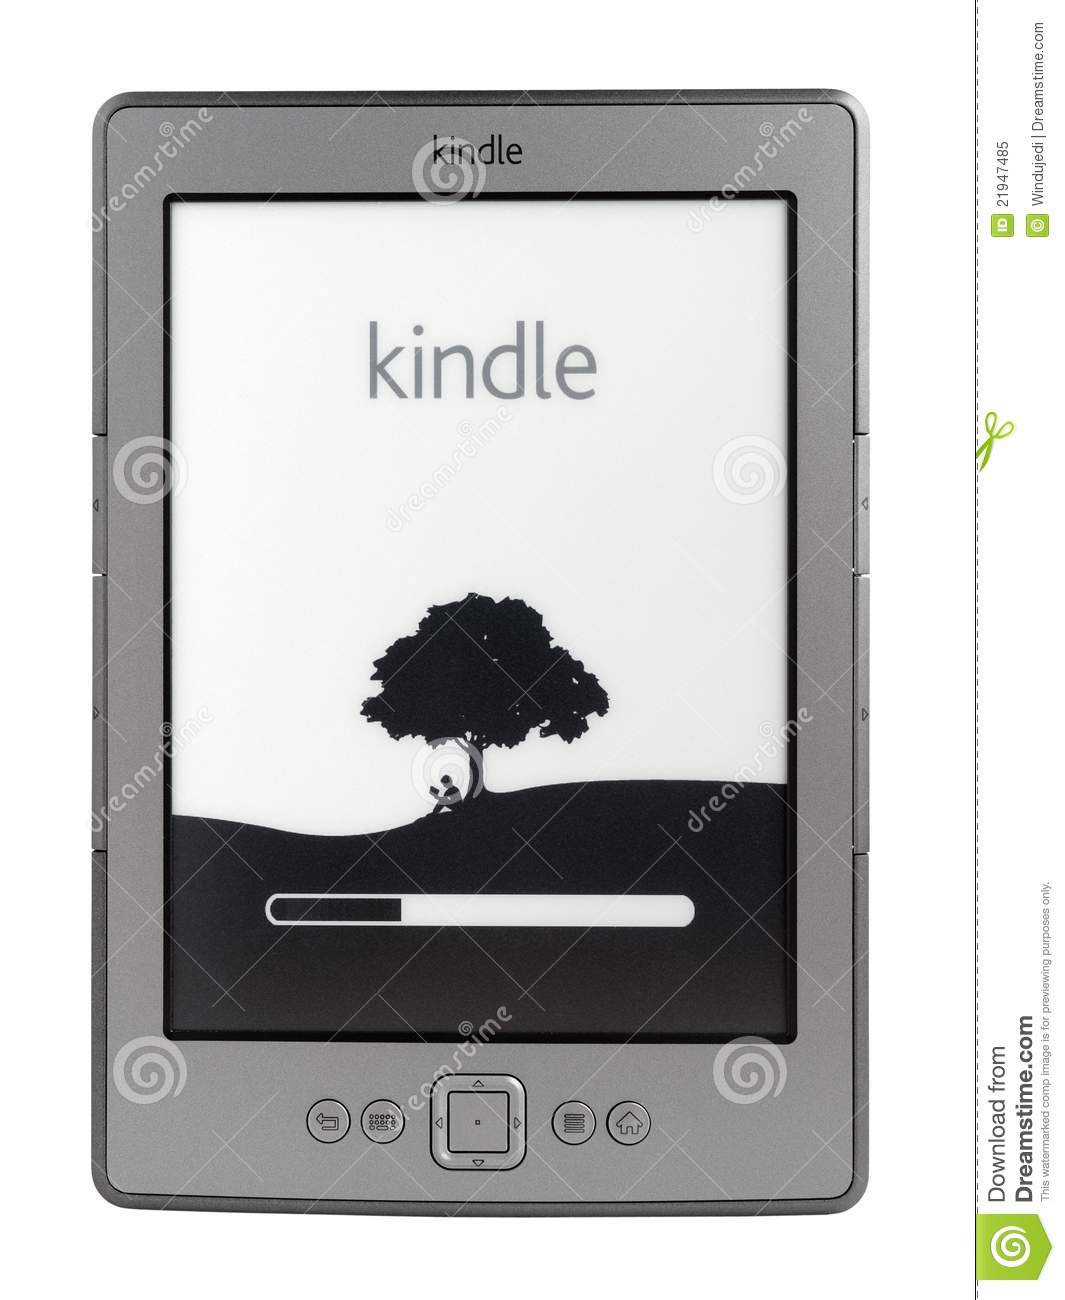 do you have got to shop for books on a kindle